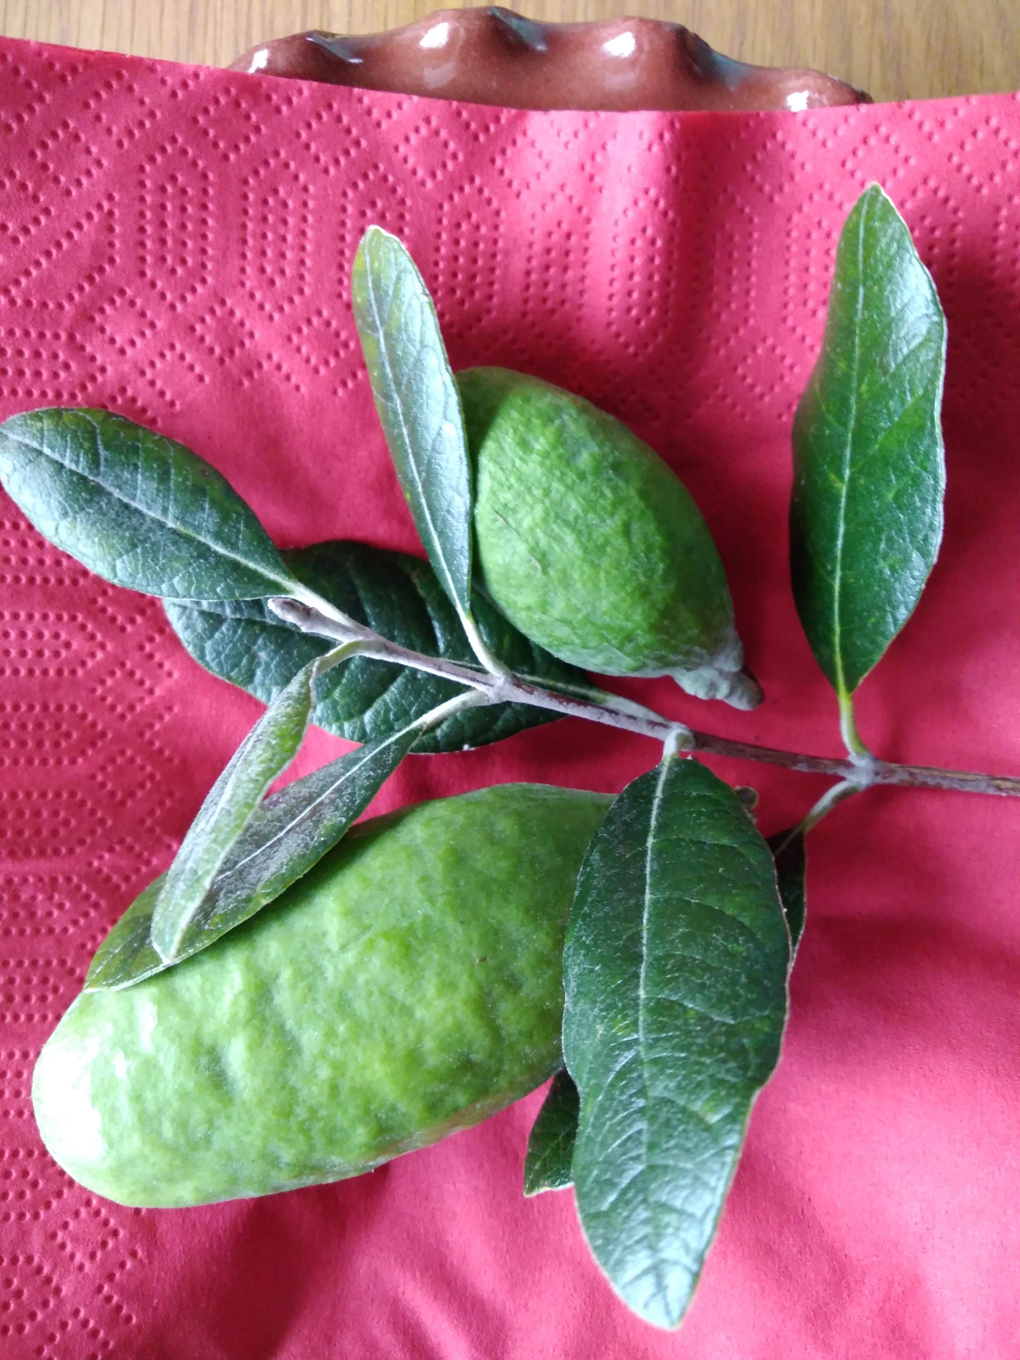 2small oval shaped green fruits with some leaves of the tree